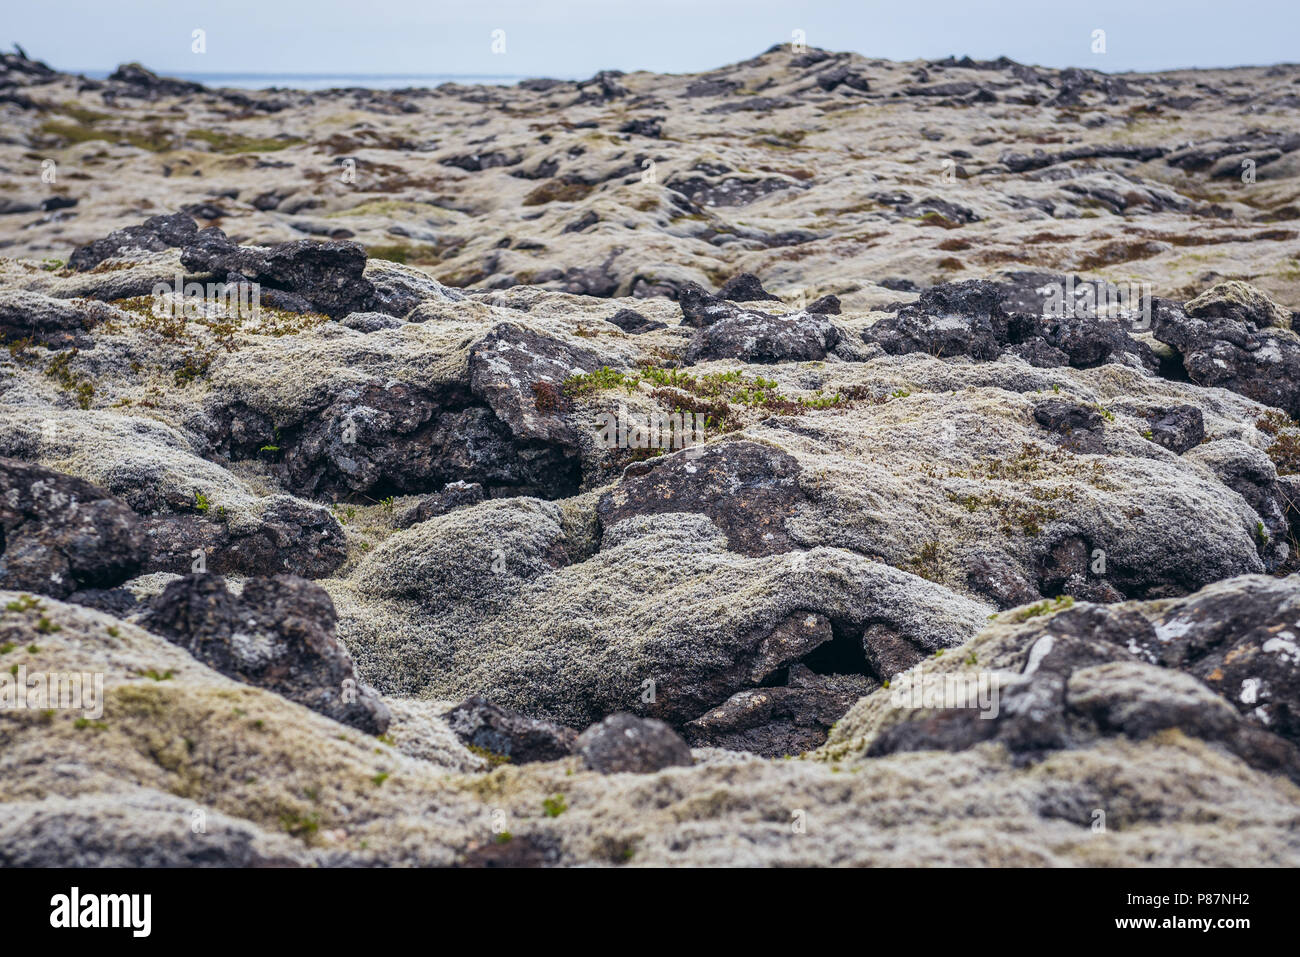 Lava field covered with moss on a Reykjanesskagi - Southern Peninsula in Southwest Iceland - Stock Image